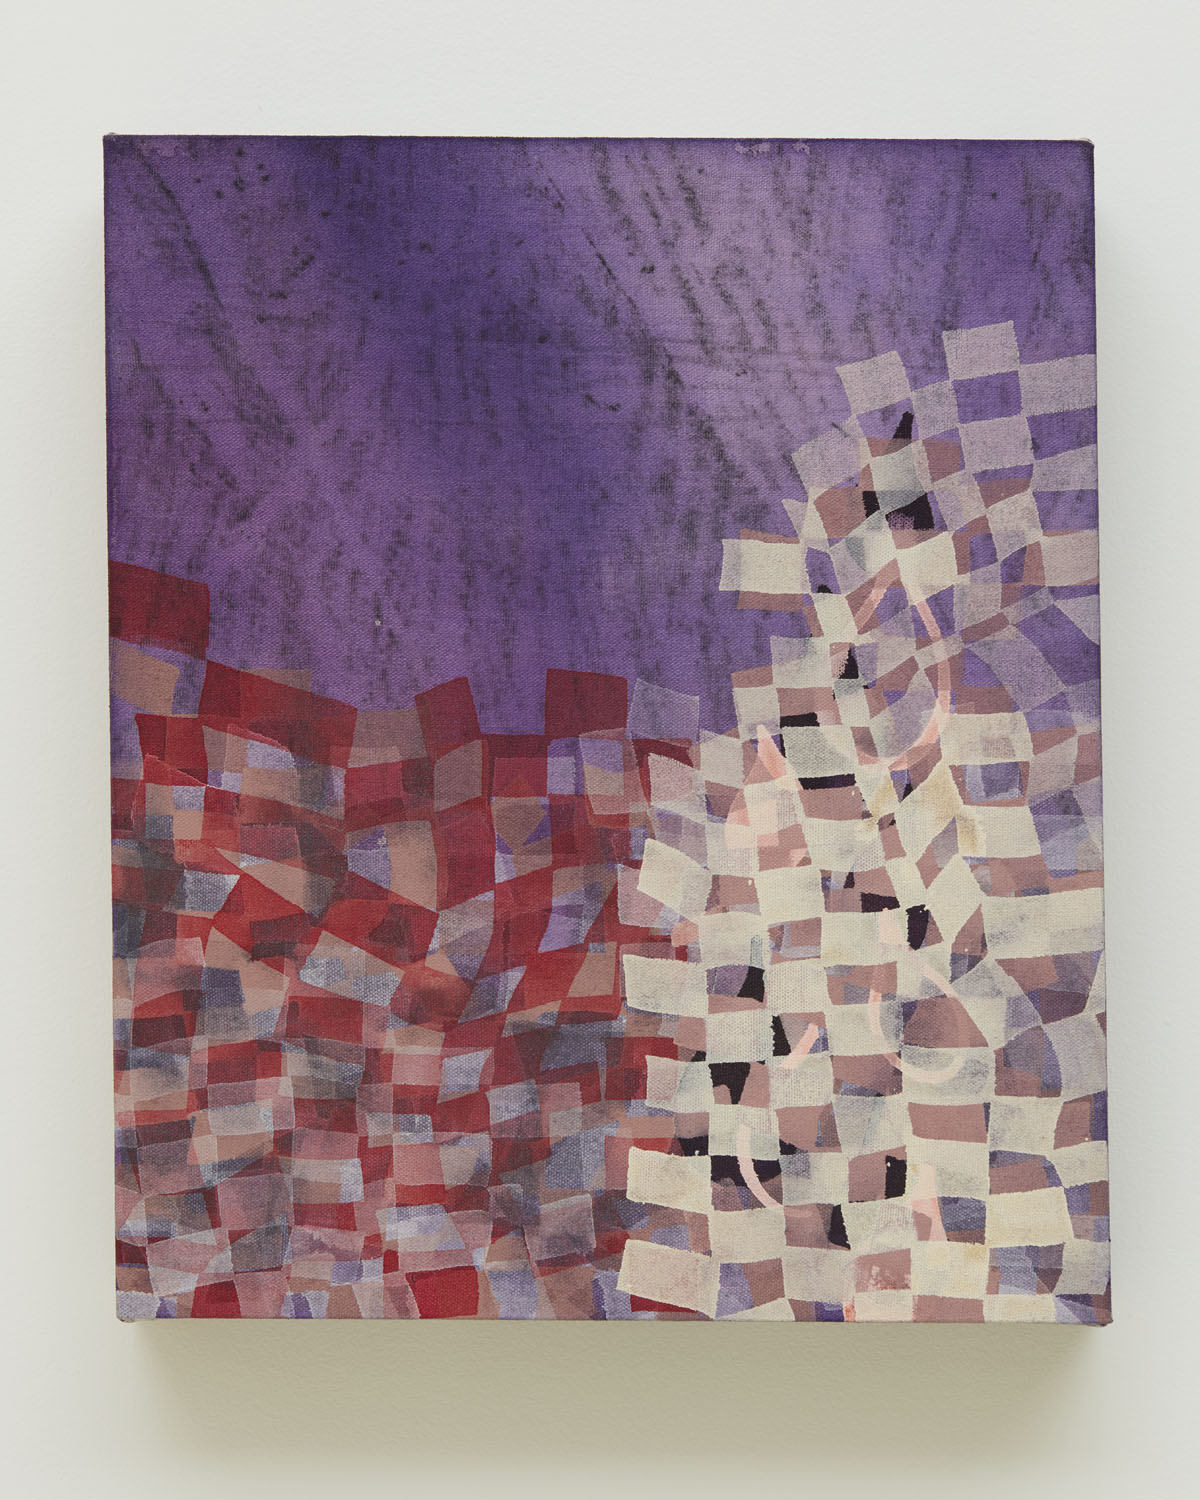 In Between, 2018, by Alyse Rosner, harlequin pattern, fine line pattern, purple, red, and white, graphite and acrylic painting on raw canvas.